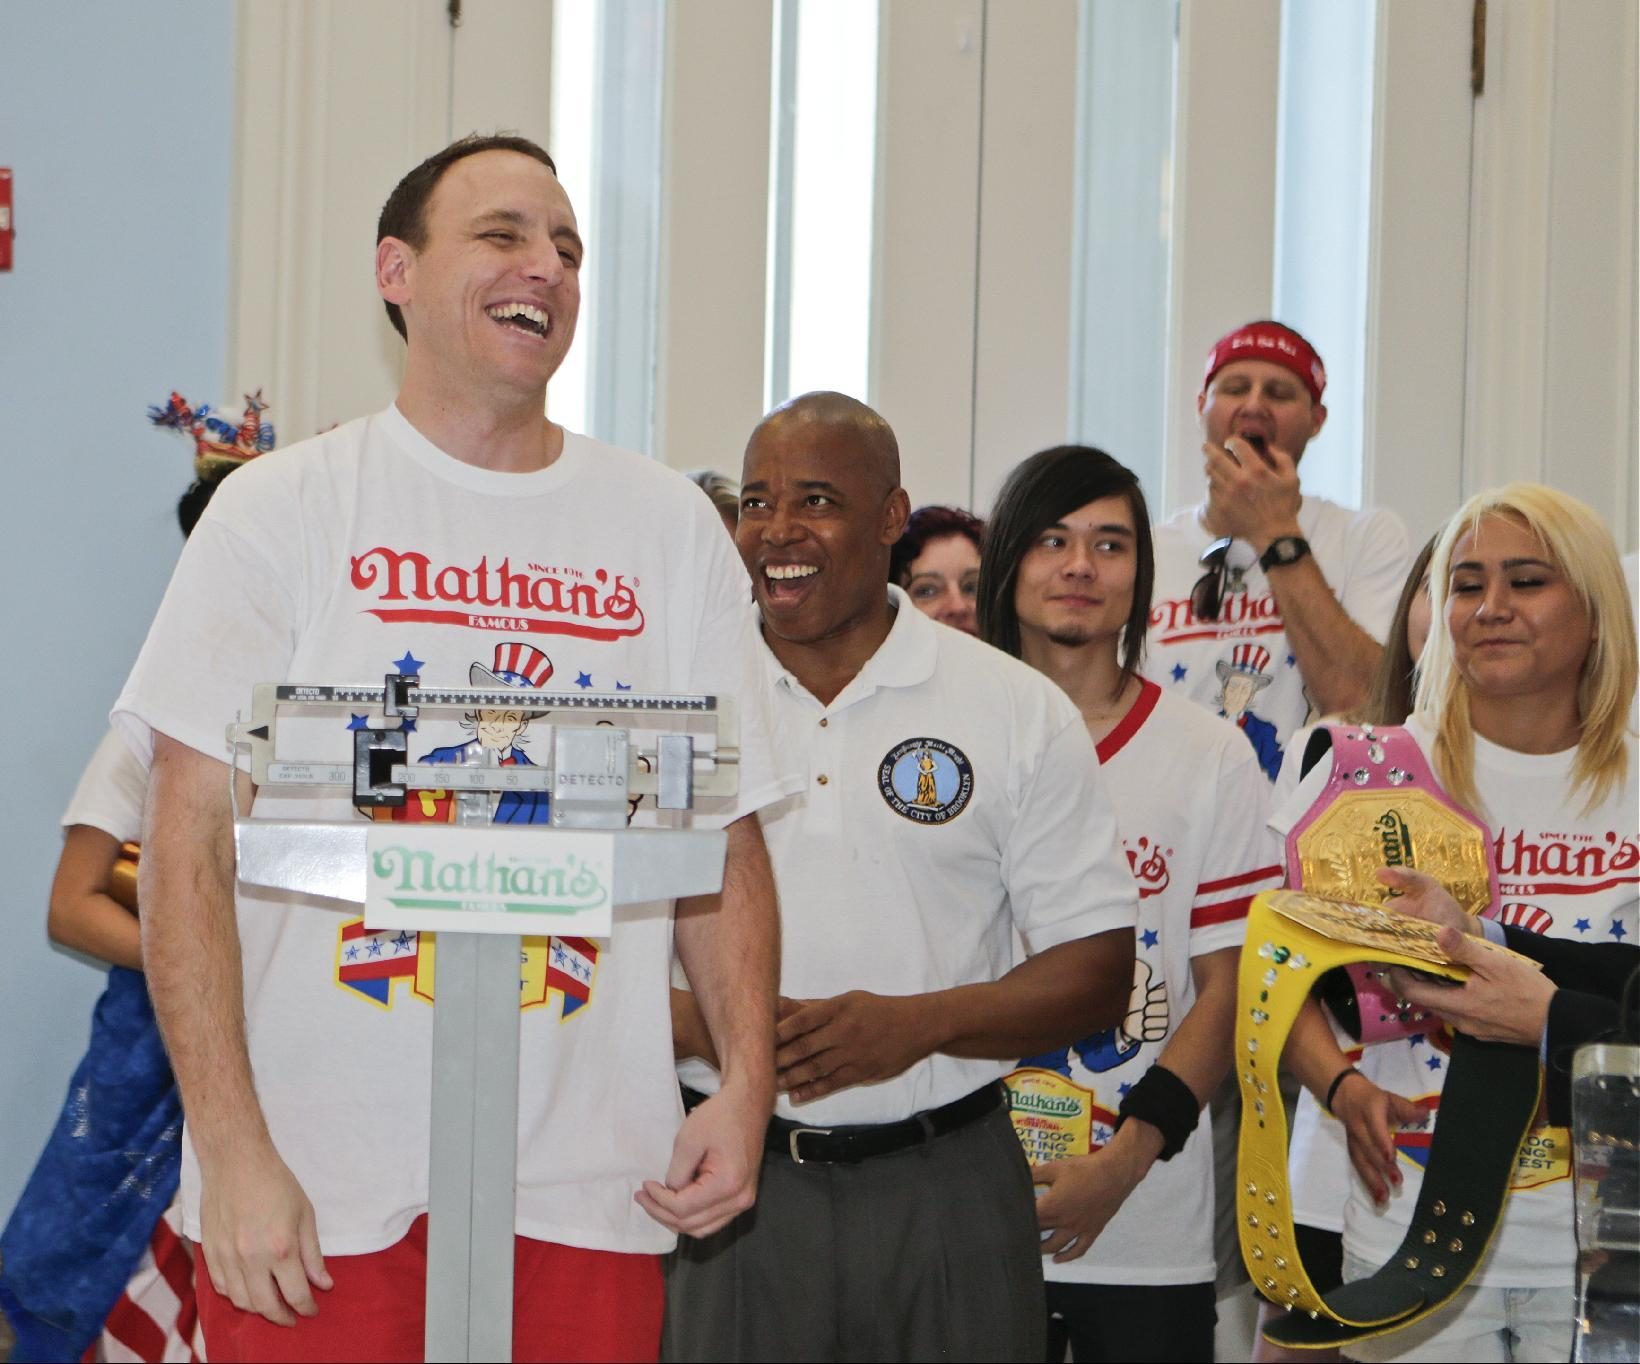 Eager eaters weigh-in ahead of NYC July 4 hot dog contest